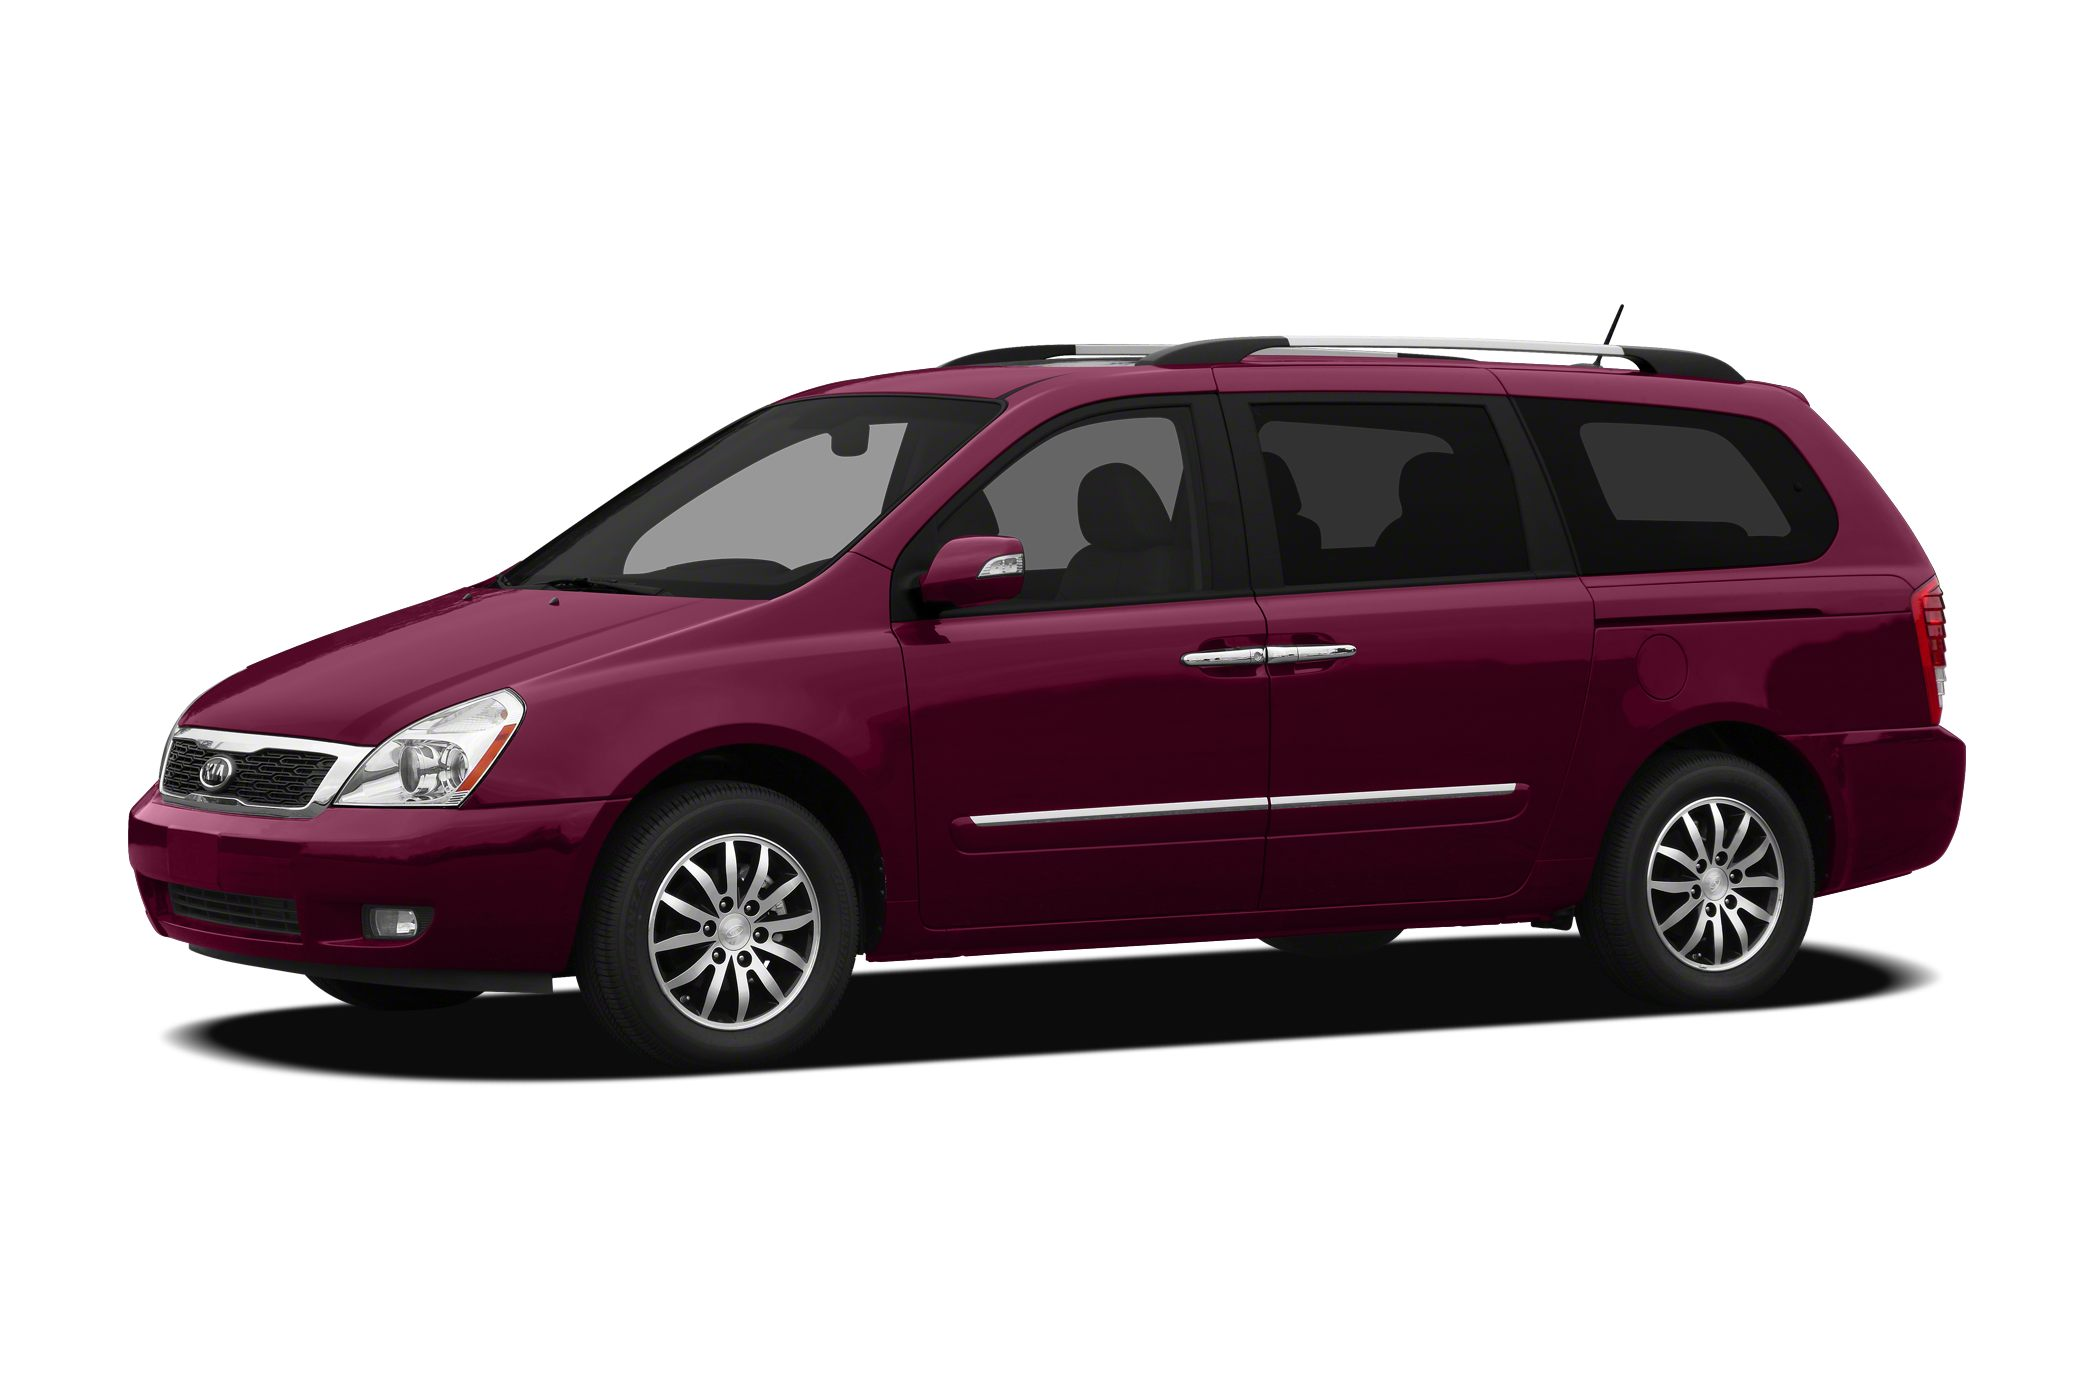 2012 Kia Sedona LX Value Value 3 Year 100k miles limited Power Train Warranty with road side Assi